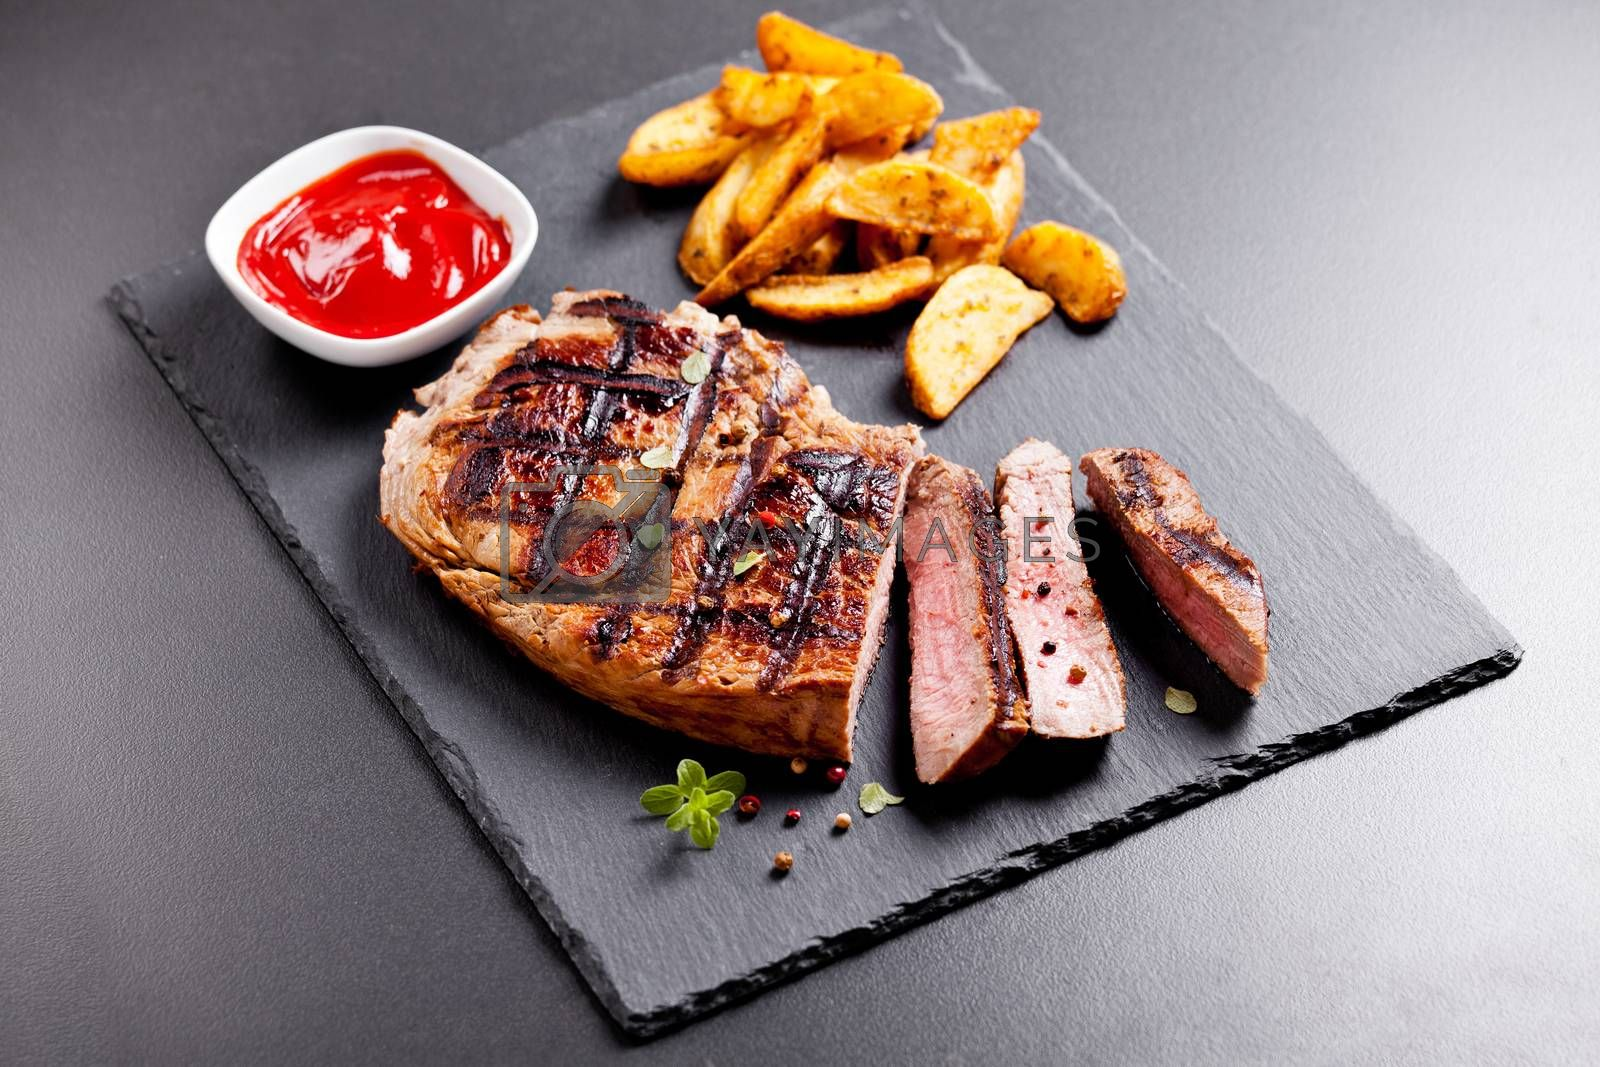 Slate platter of grilled steak with potatoes